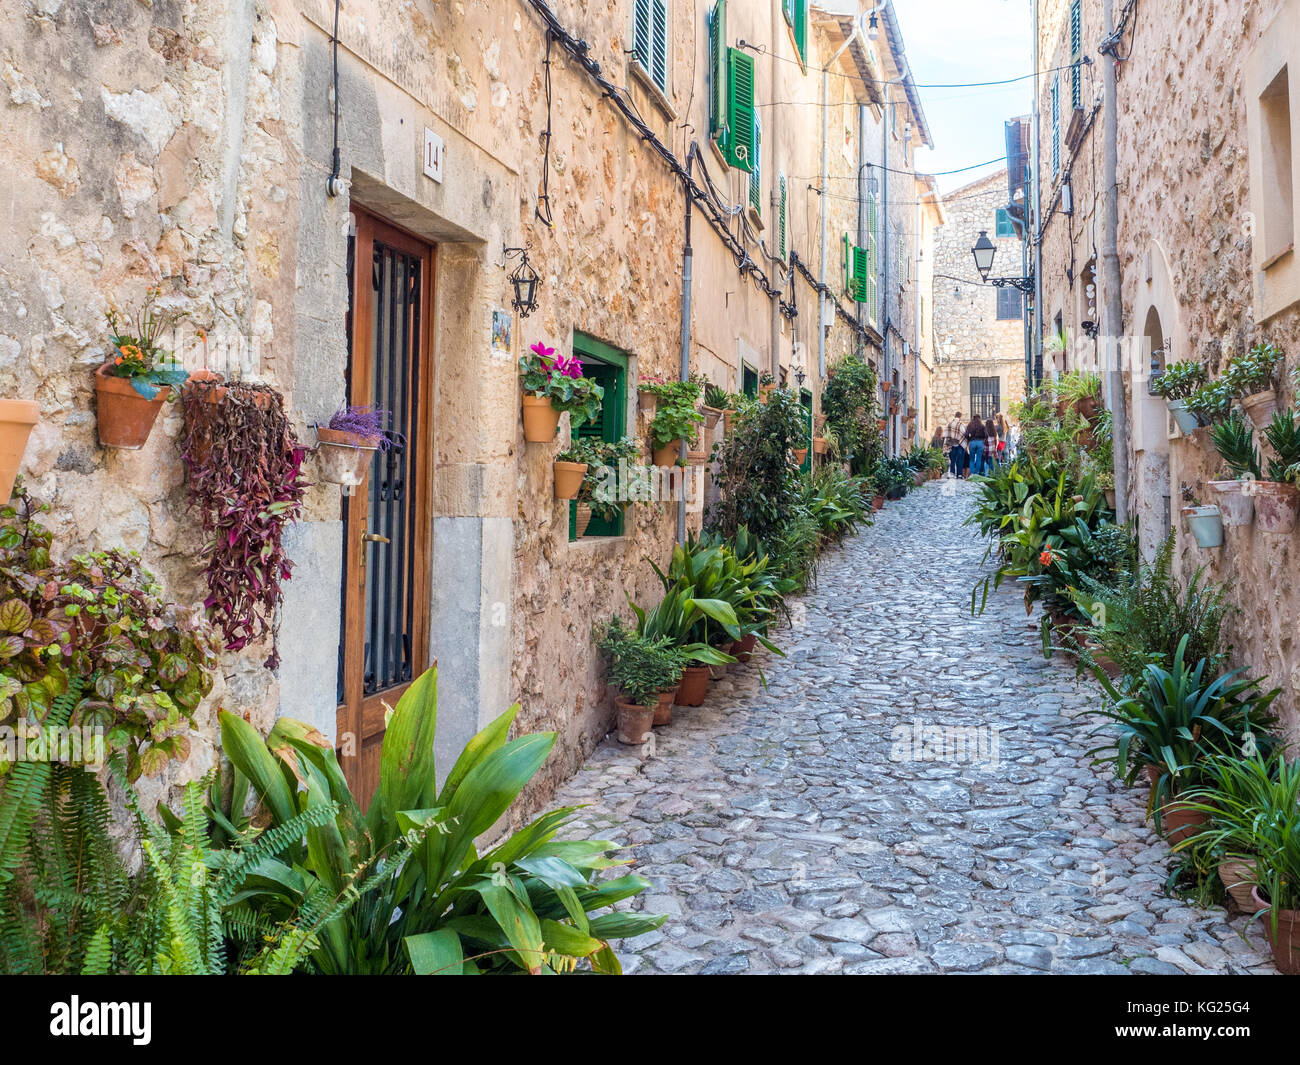 Street with flowers, Valdemossa, Mallorca, Balearic Islands, Spain, Mediterranean, Europe Stock Photo